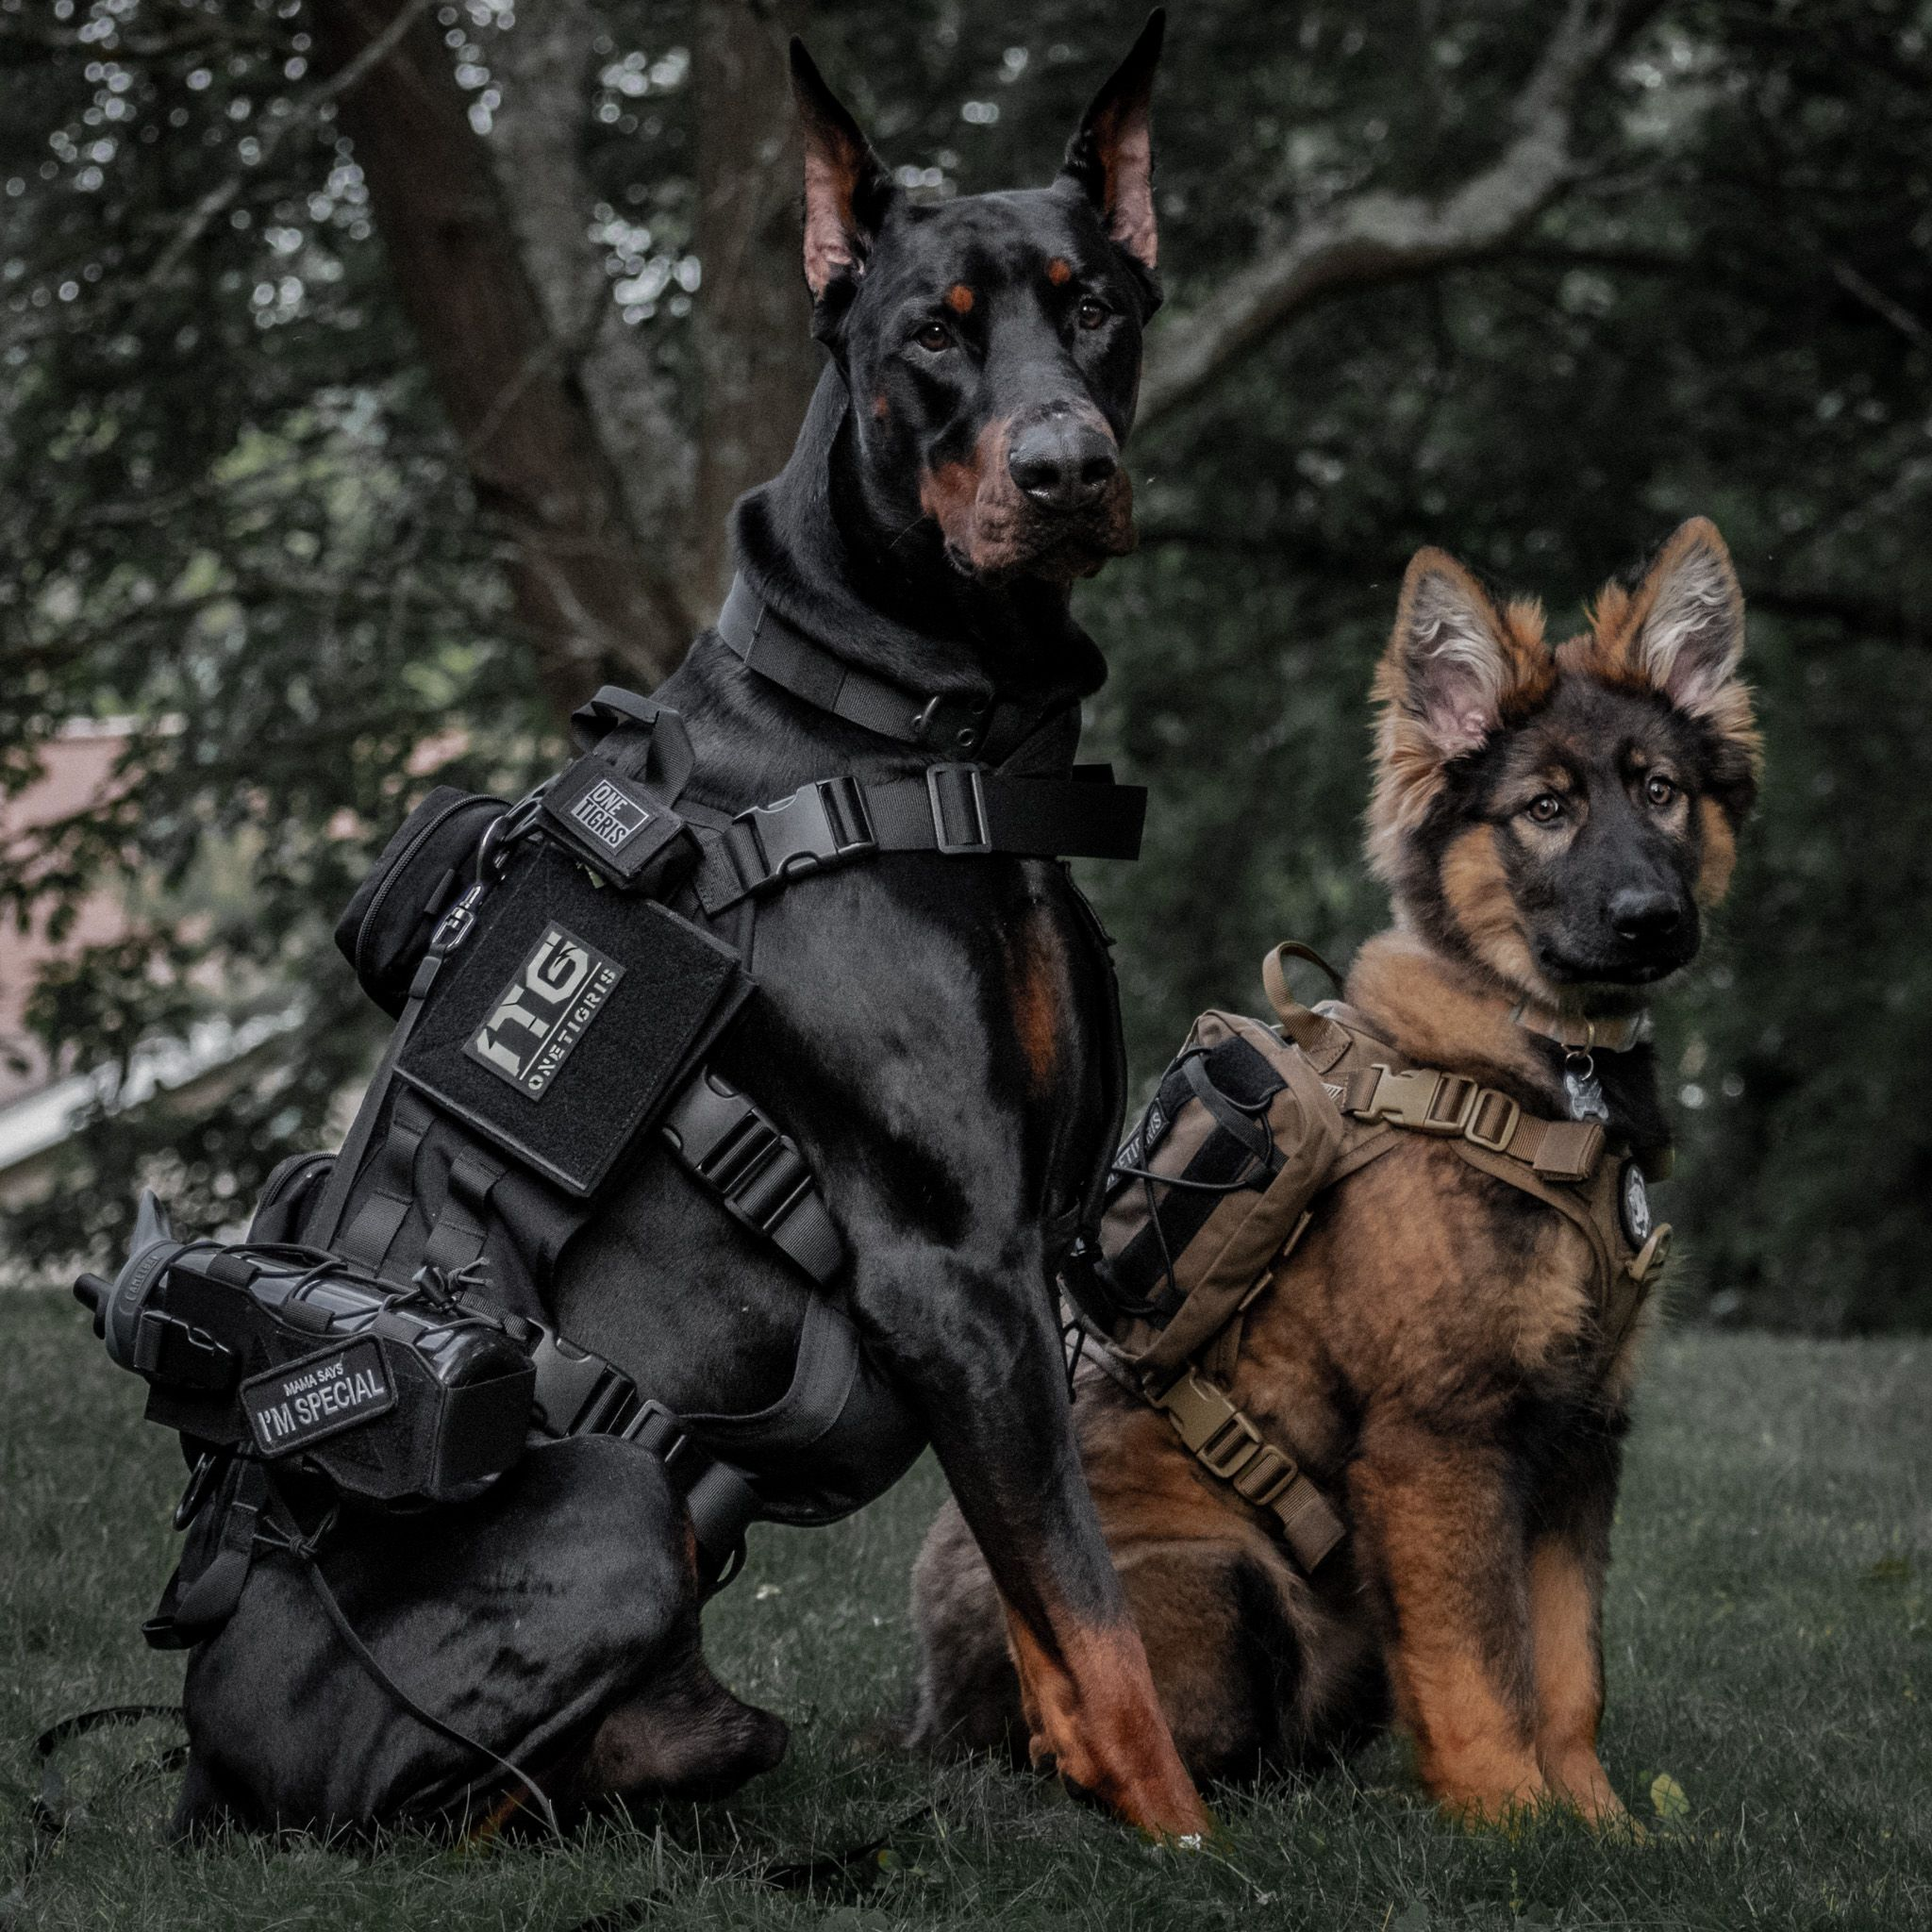 Onetigris Power Rocket K9 Harness Onetigris Tactical Dog Vest With Molle And Grab Handles Military Dogs Doberman Pinscher Dog Dogs